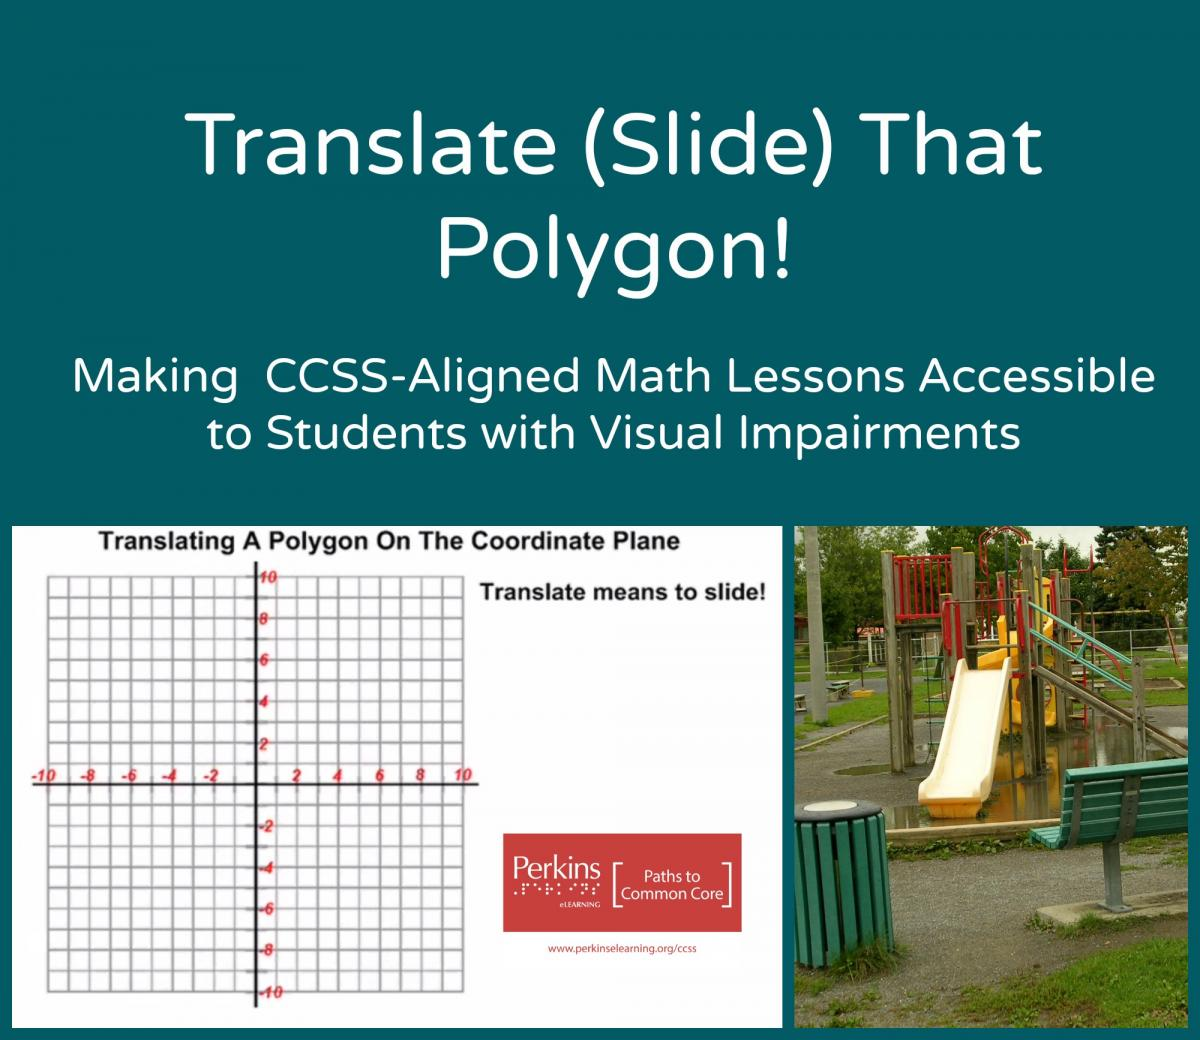 Translate Polygon collage